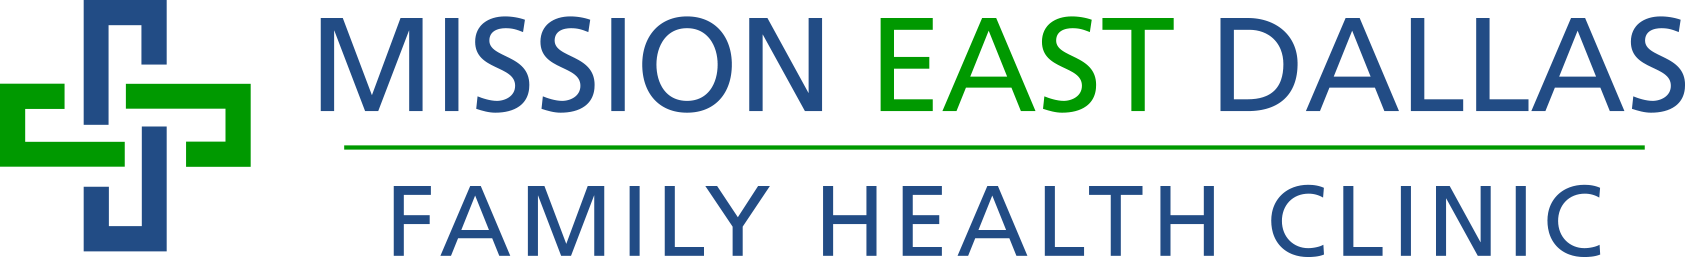 Mission East Dallas | Trusted Healthcare Provider